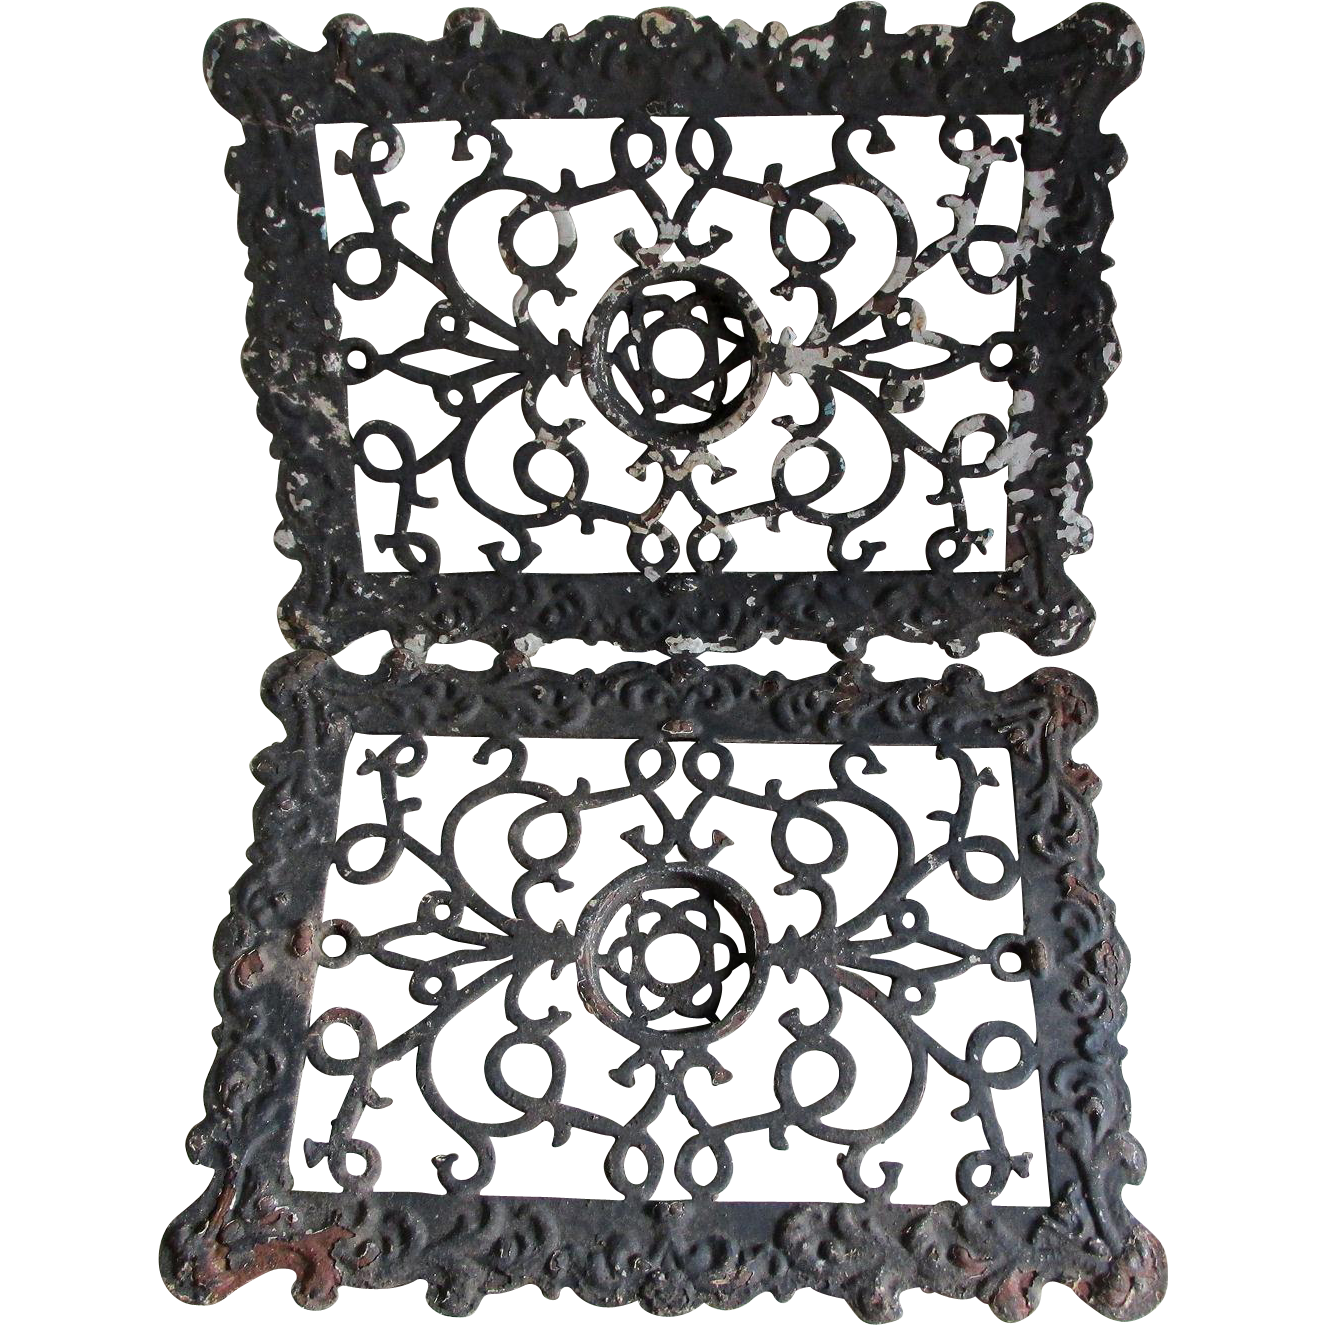 Pair Antique Architectural Elements, Grates, Vent Covers